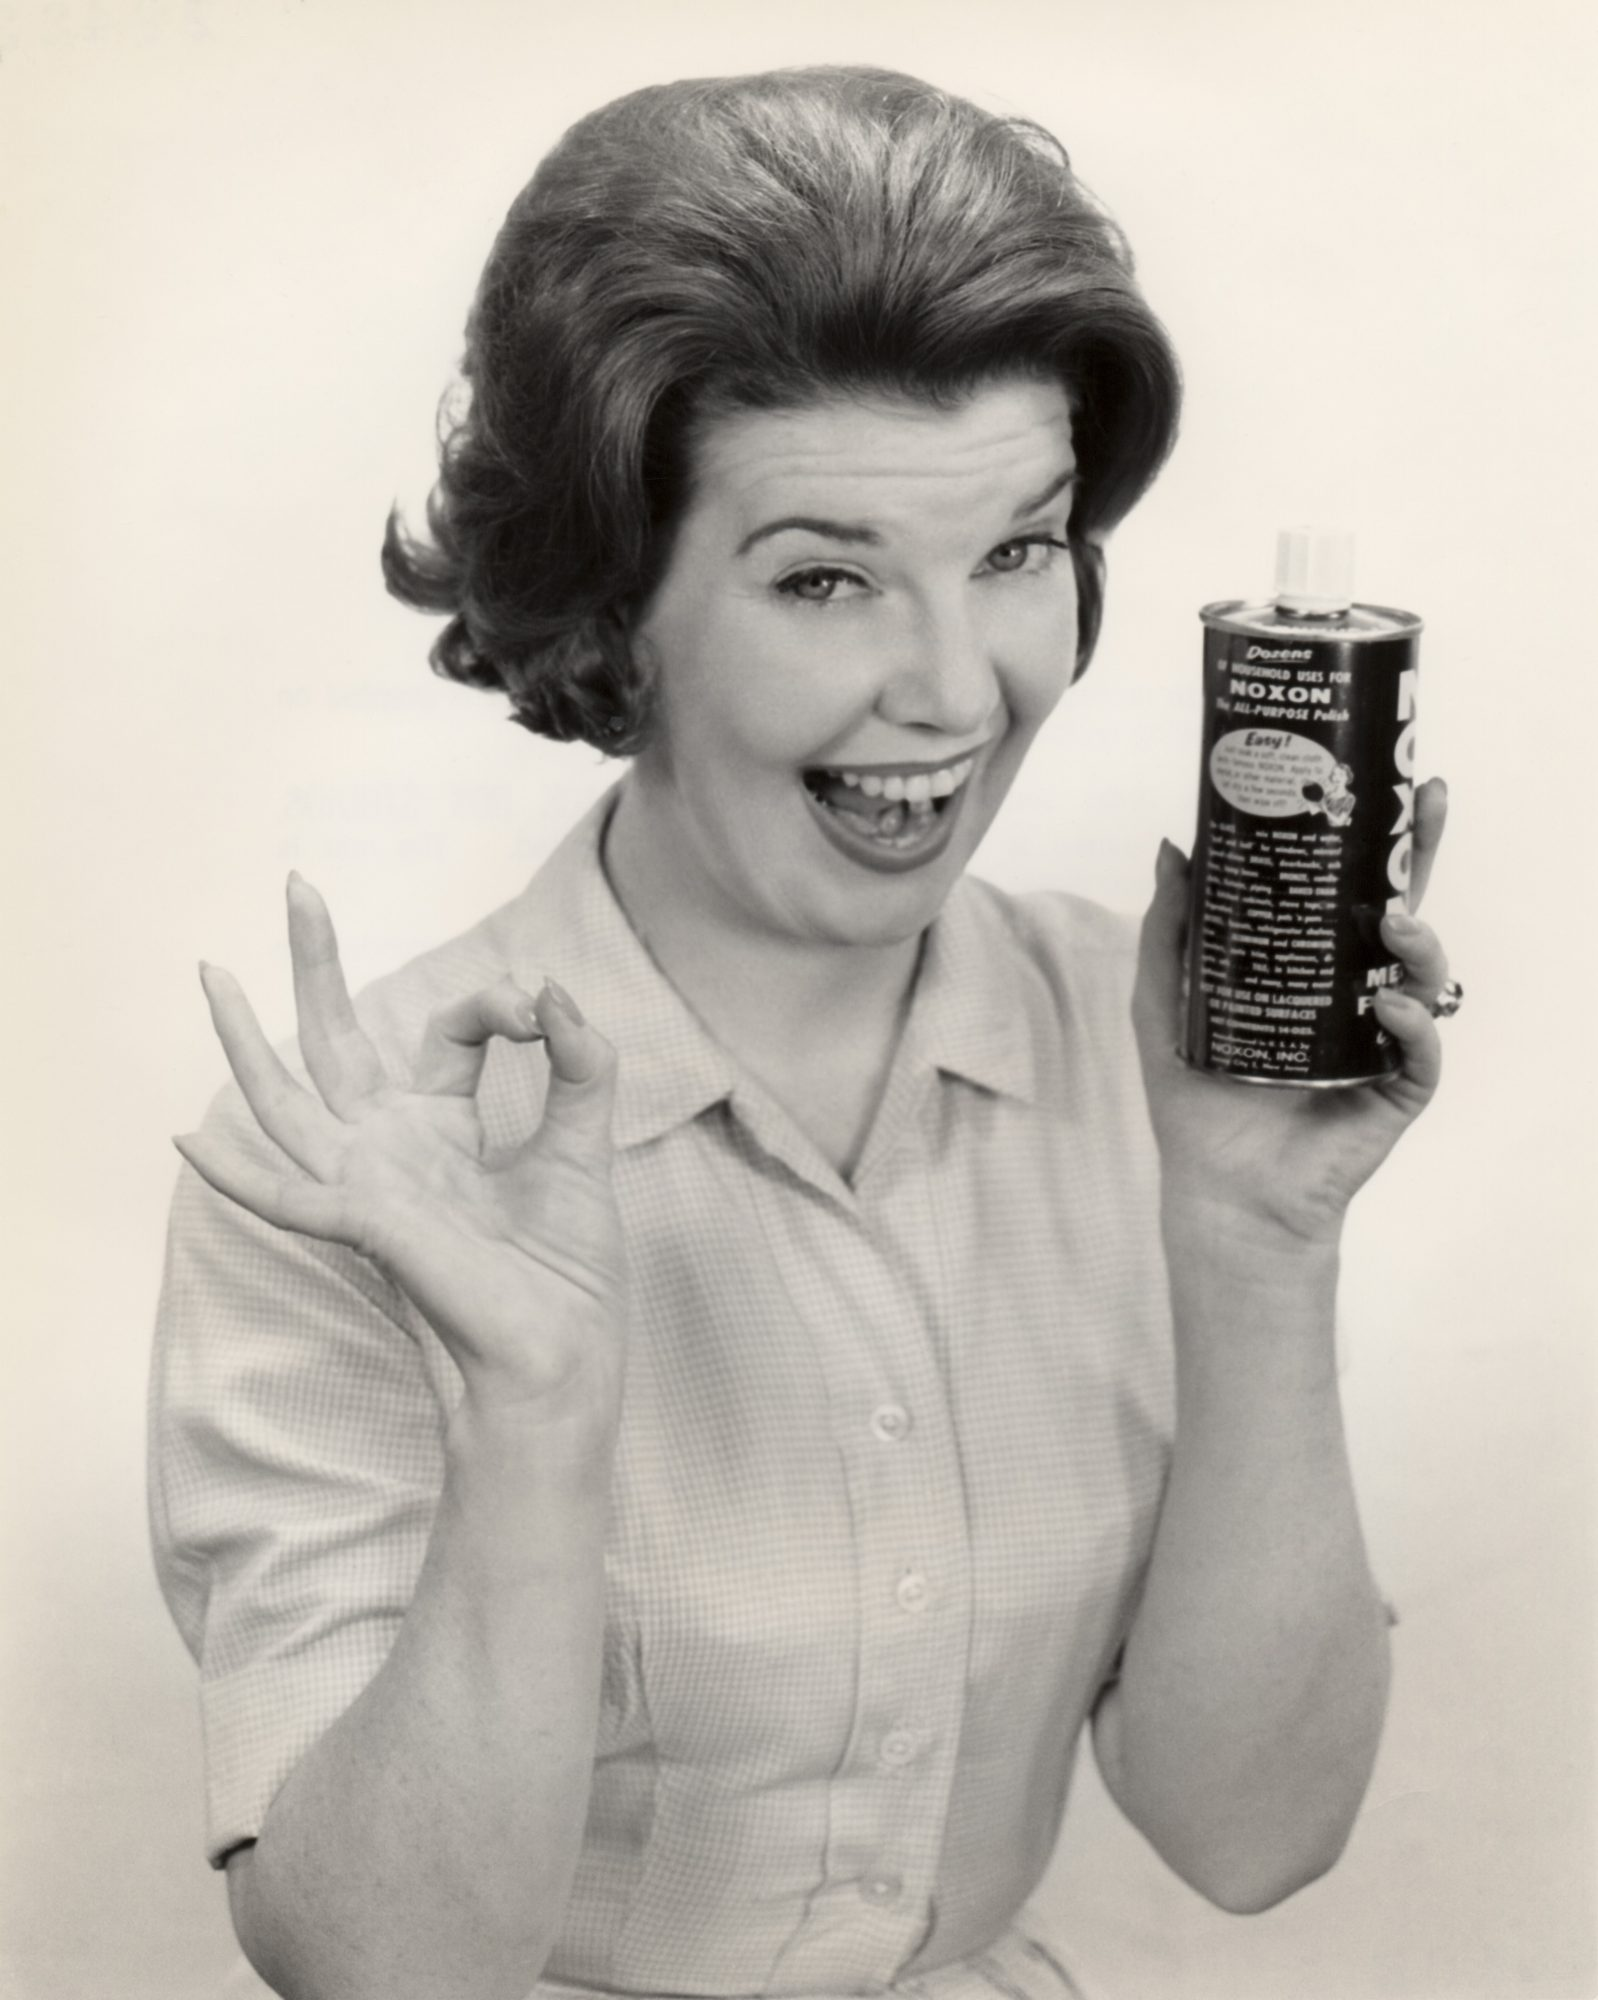 Portrait of a woman holding can of Noxon